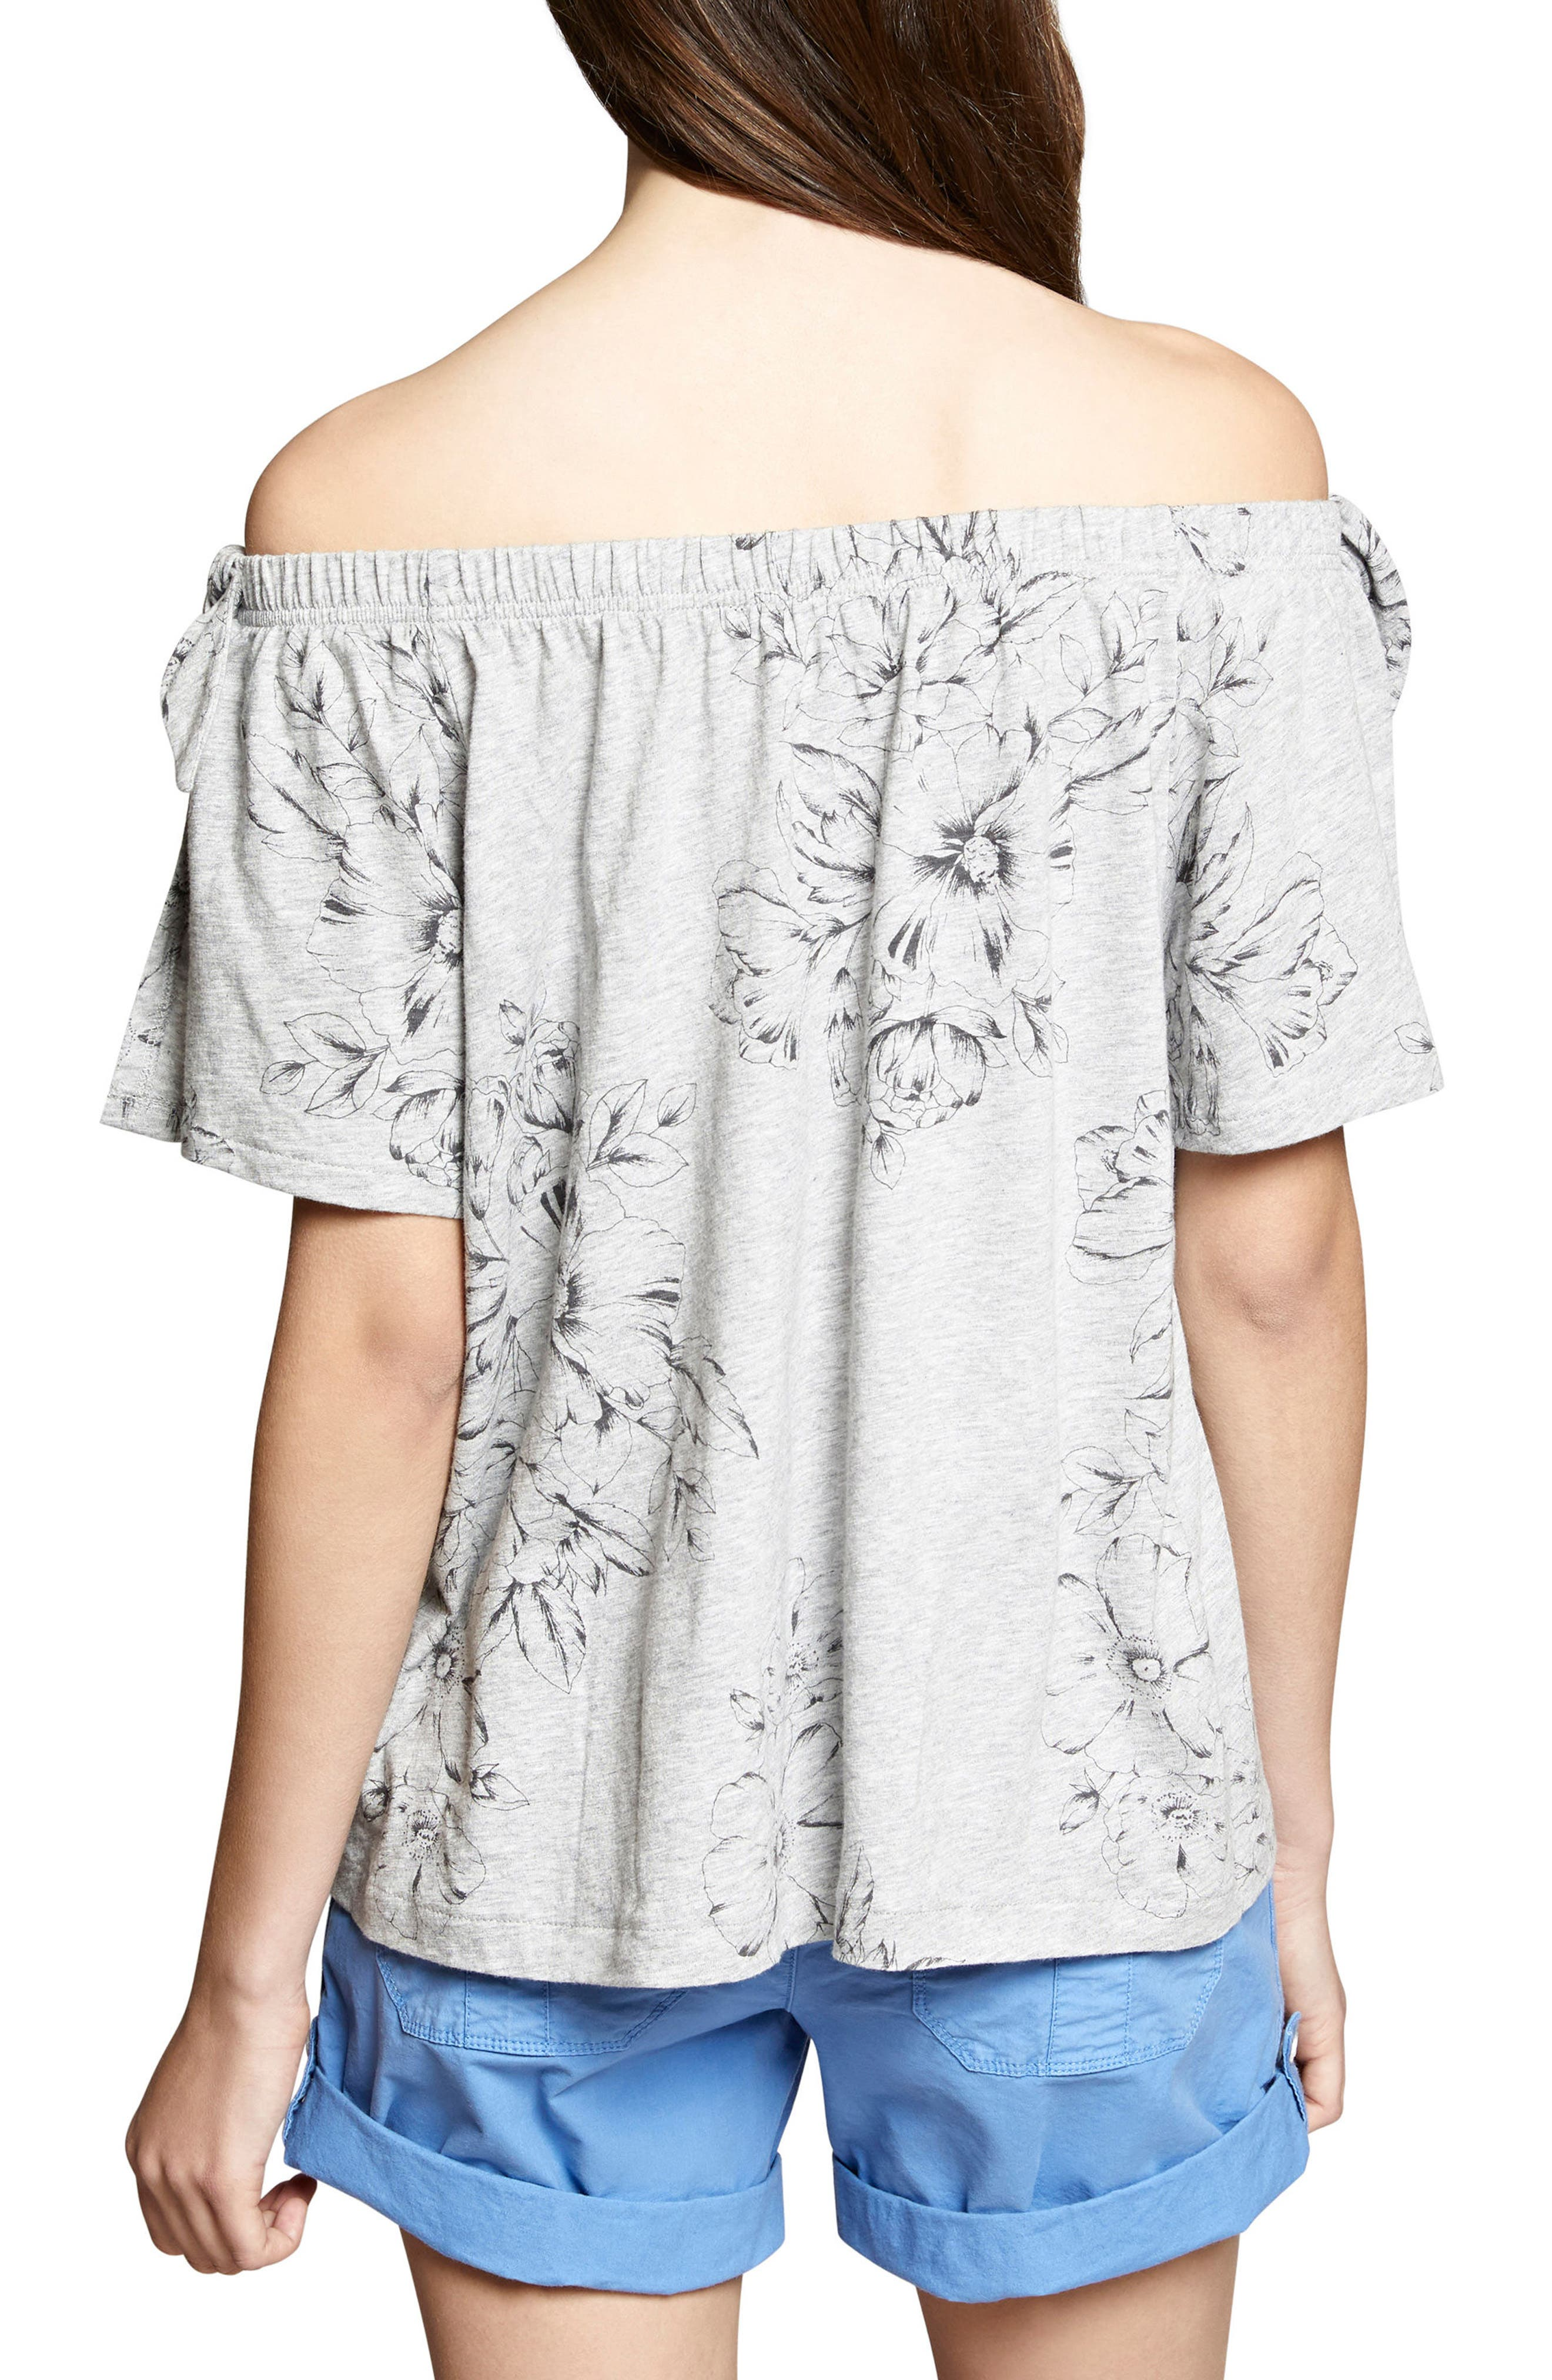 Riviera Off the Shoulder Tie Sleeve Top,                             Alternate thumbnail 2, color,                             Hibiscus/ Heather Grey